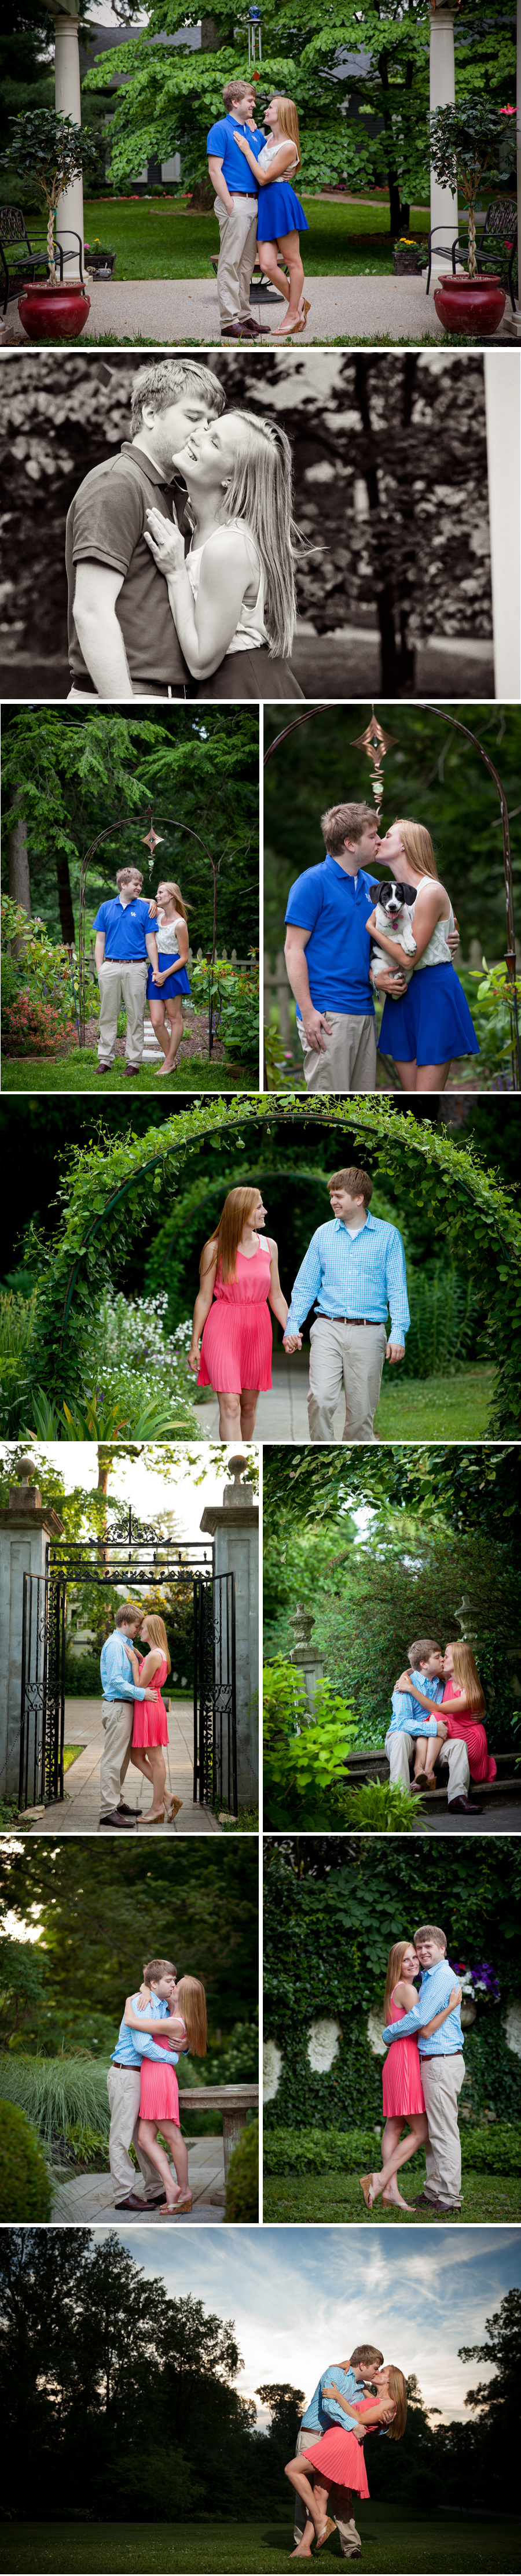 Whitehall engagement photos